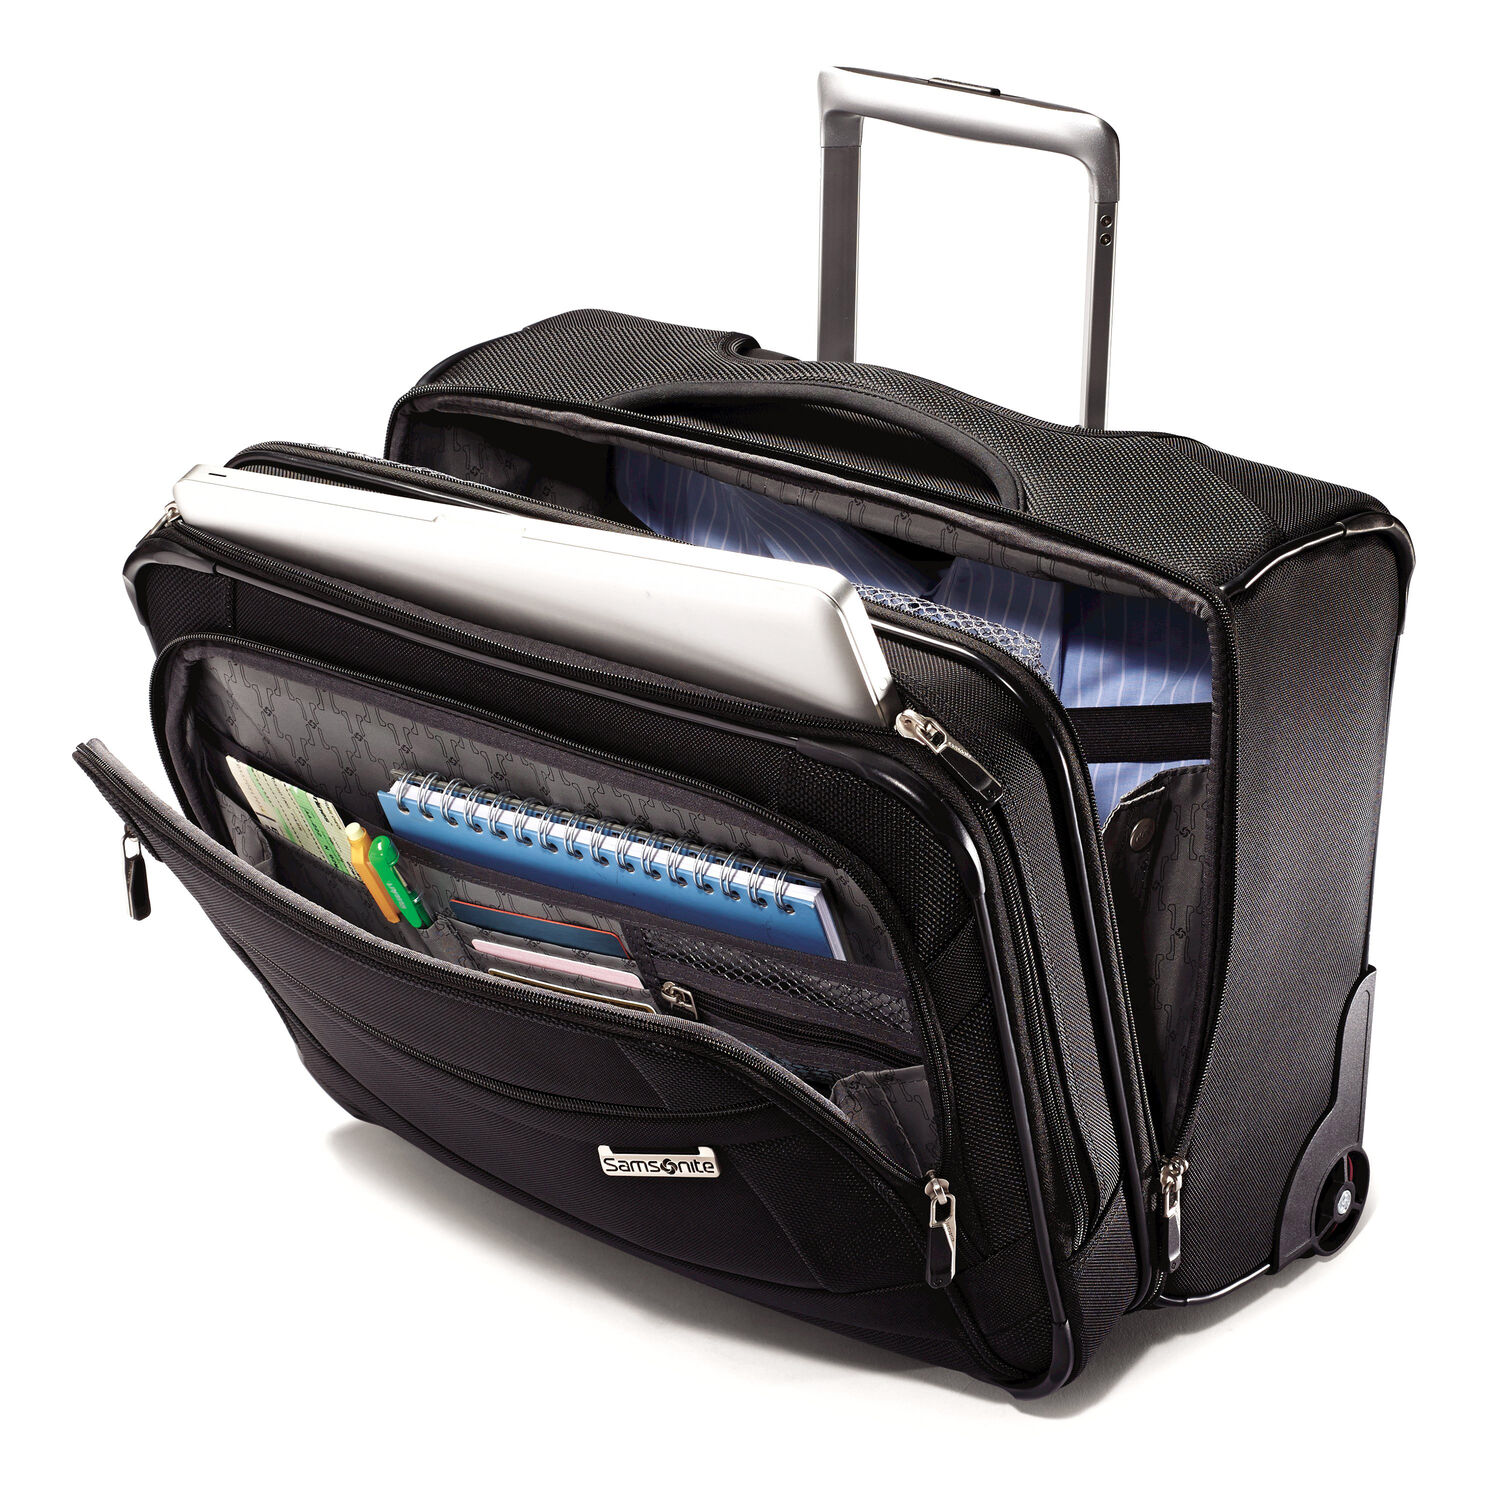 d28645f95313 Samsonite SoLyte Wheeled Boarding Bag in the color Black.